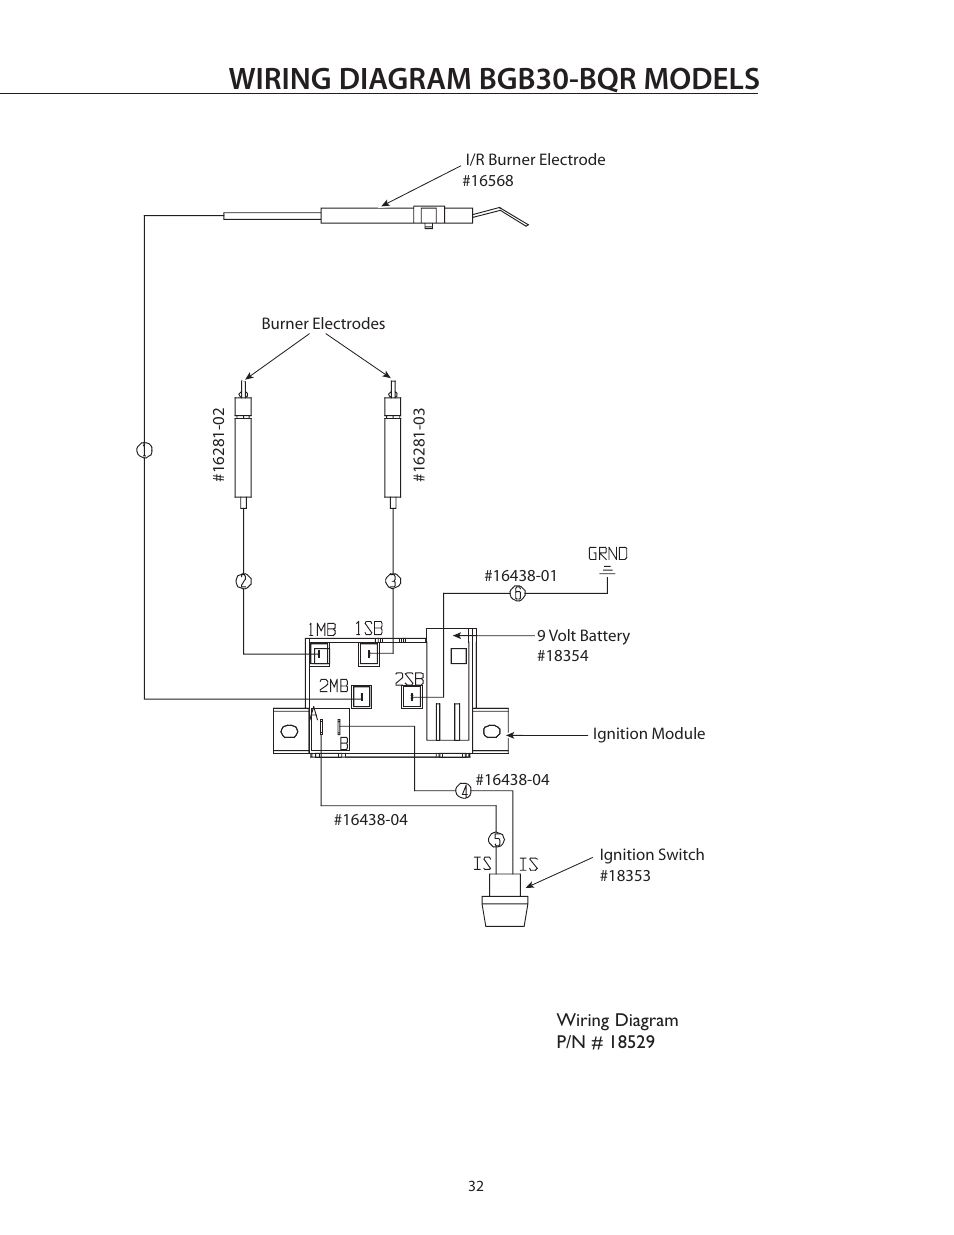 Wiring diagram bgb30-bqr models | DCS BGB30-BQR User Manual | Page 33 / 38